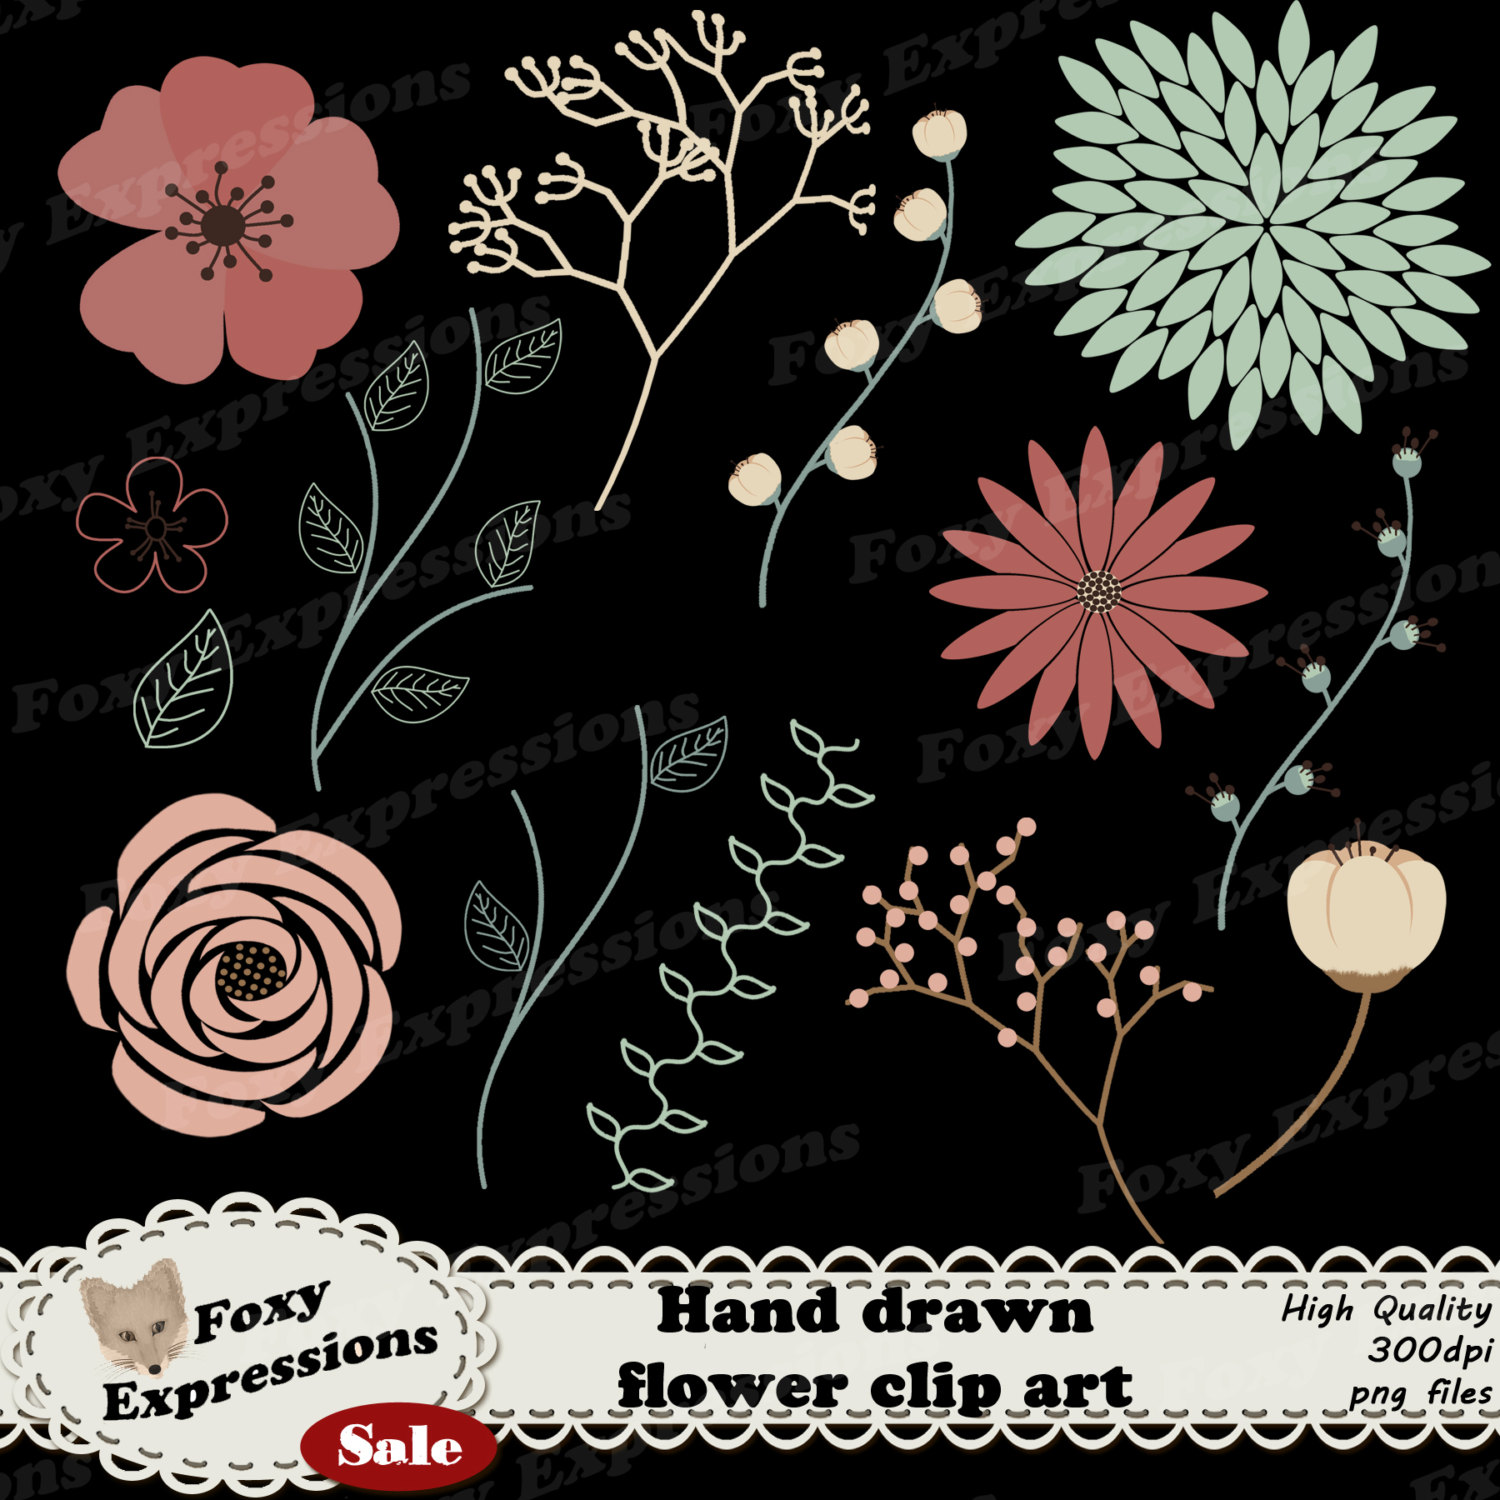 Hand drawn flower clip art in beautiful shades on warm pinks and.